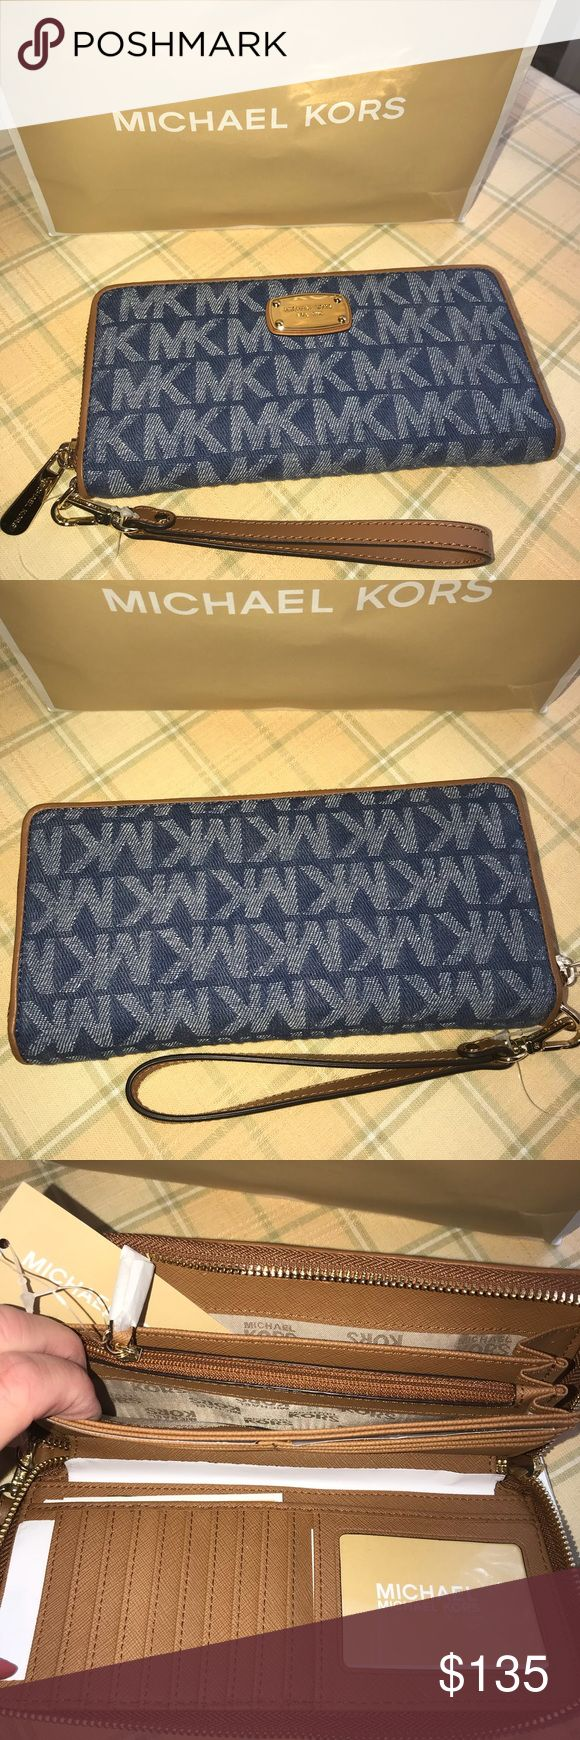 🆕Authentic Micheal Kors denim Large Wristlet Bundle and save on this adorable Authentic MK denim large fabric Wristlet Ships same or next day Michael Kors Bags Clutches & Wristlets #Wristlets